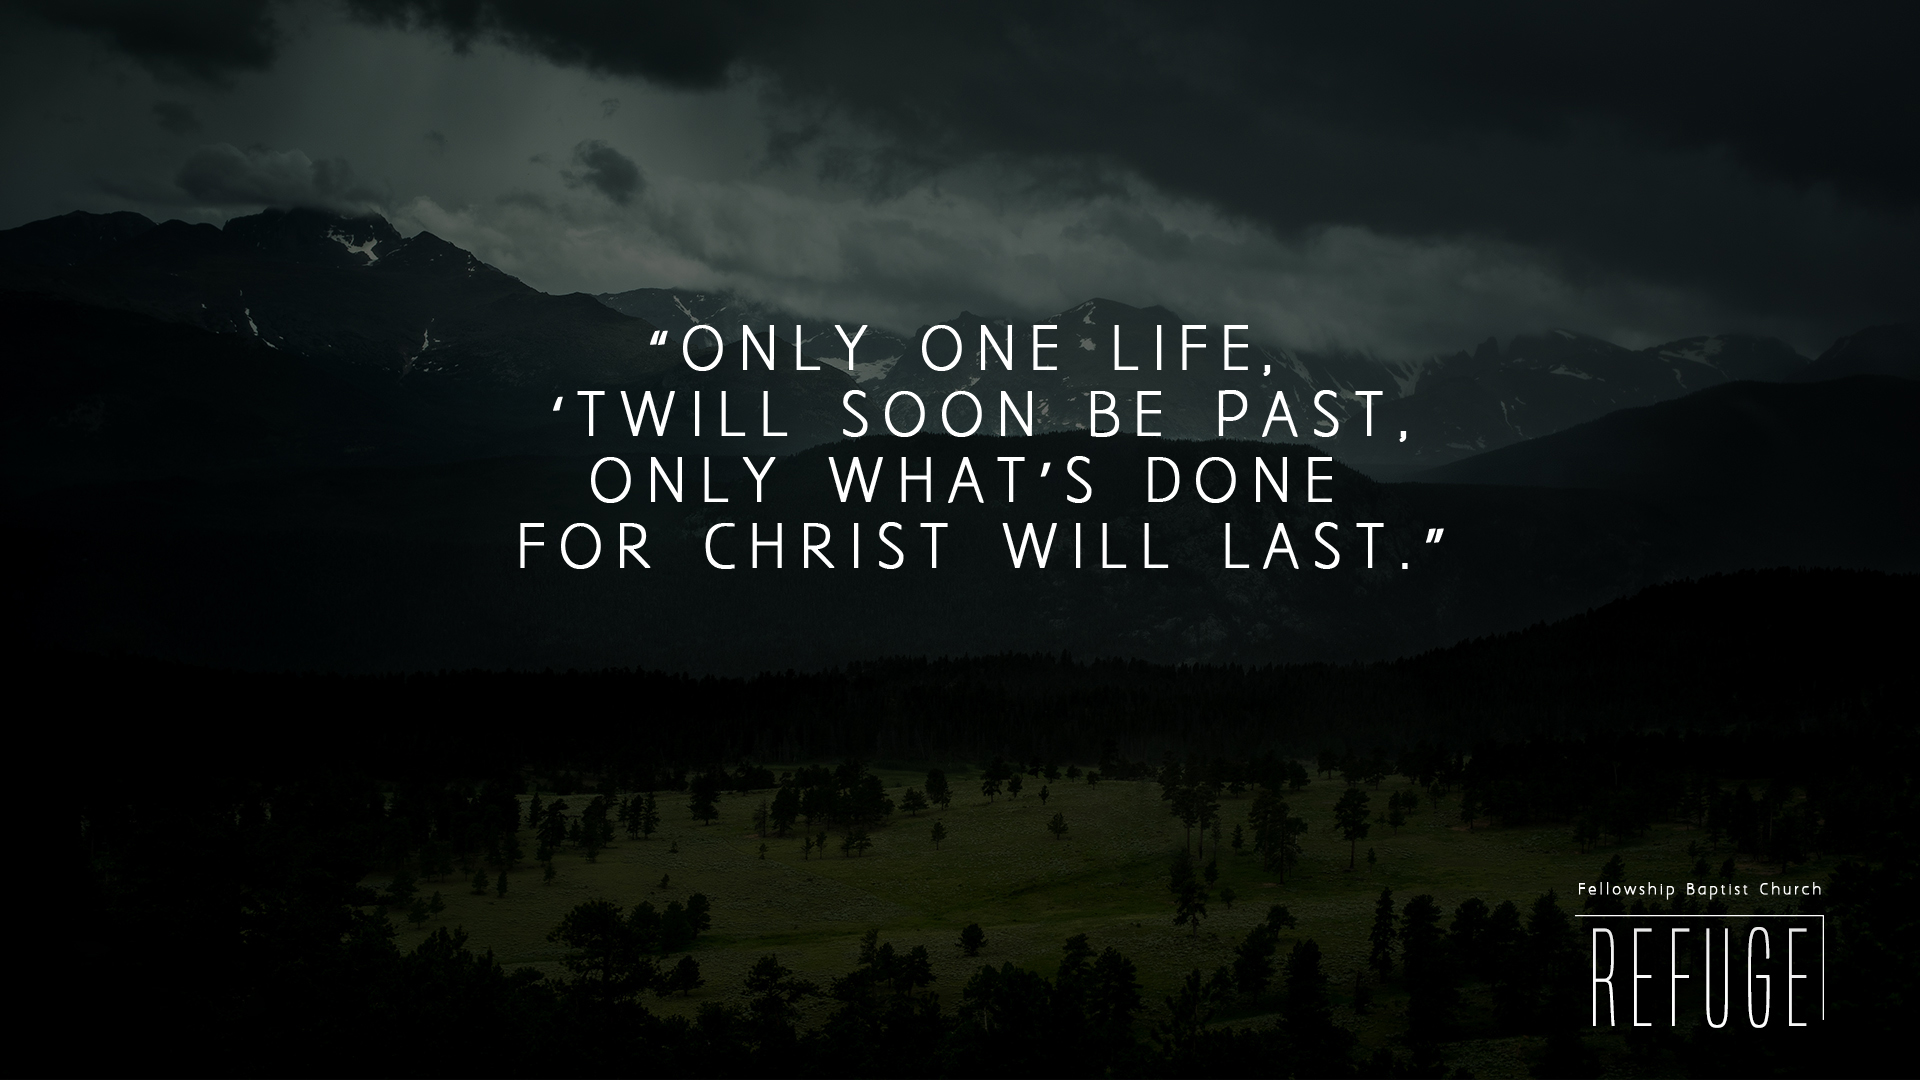 7be0fa2d4 How to Live a Life Well-Lived — Fellowship Baptist Church